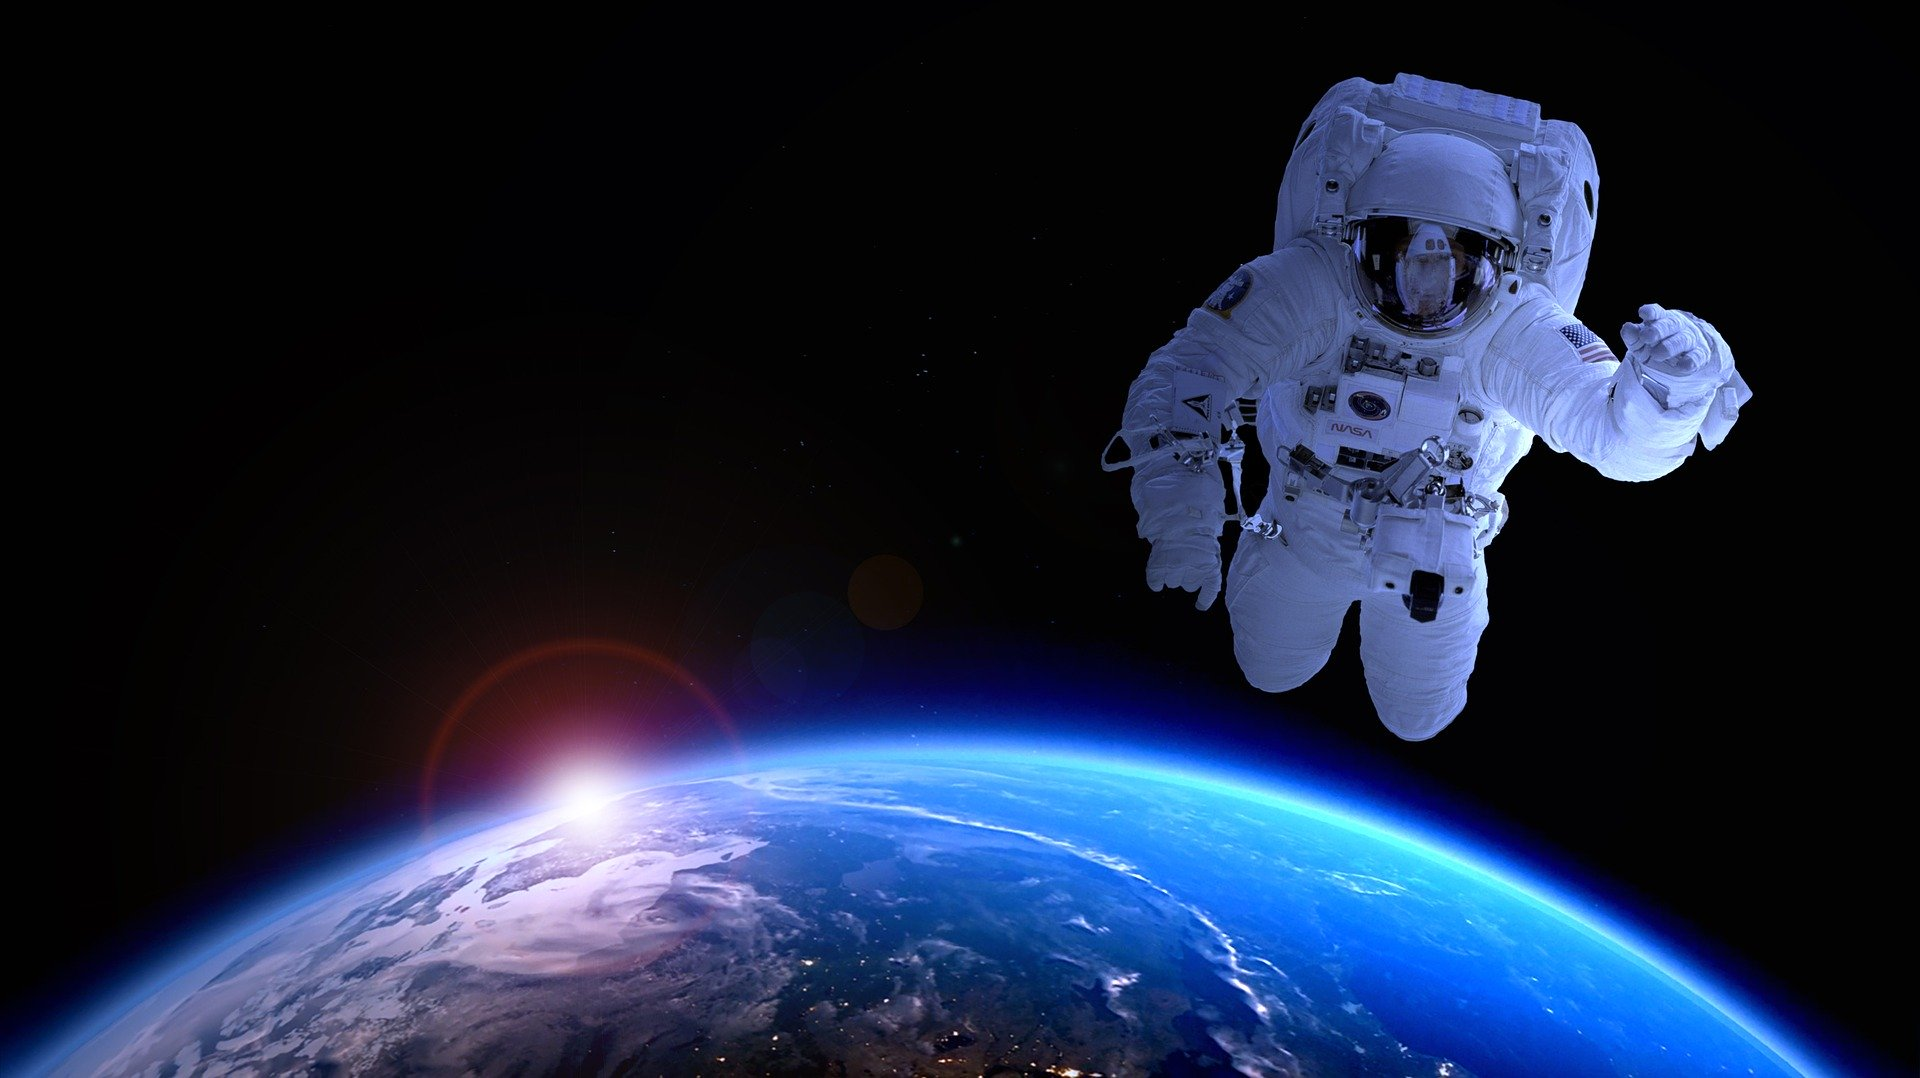 astronaut 1849401 1920 - This Week in Partnerships: Our Favorite Cross-Sector Stories